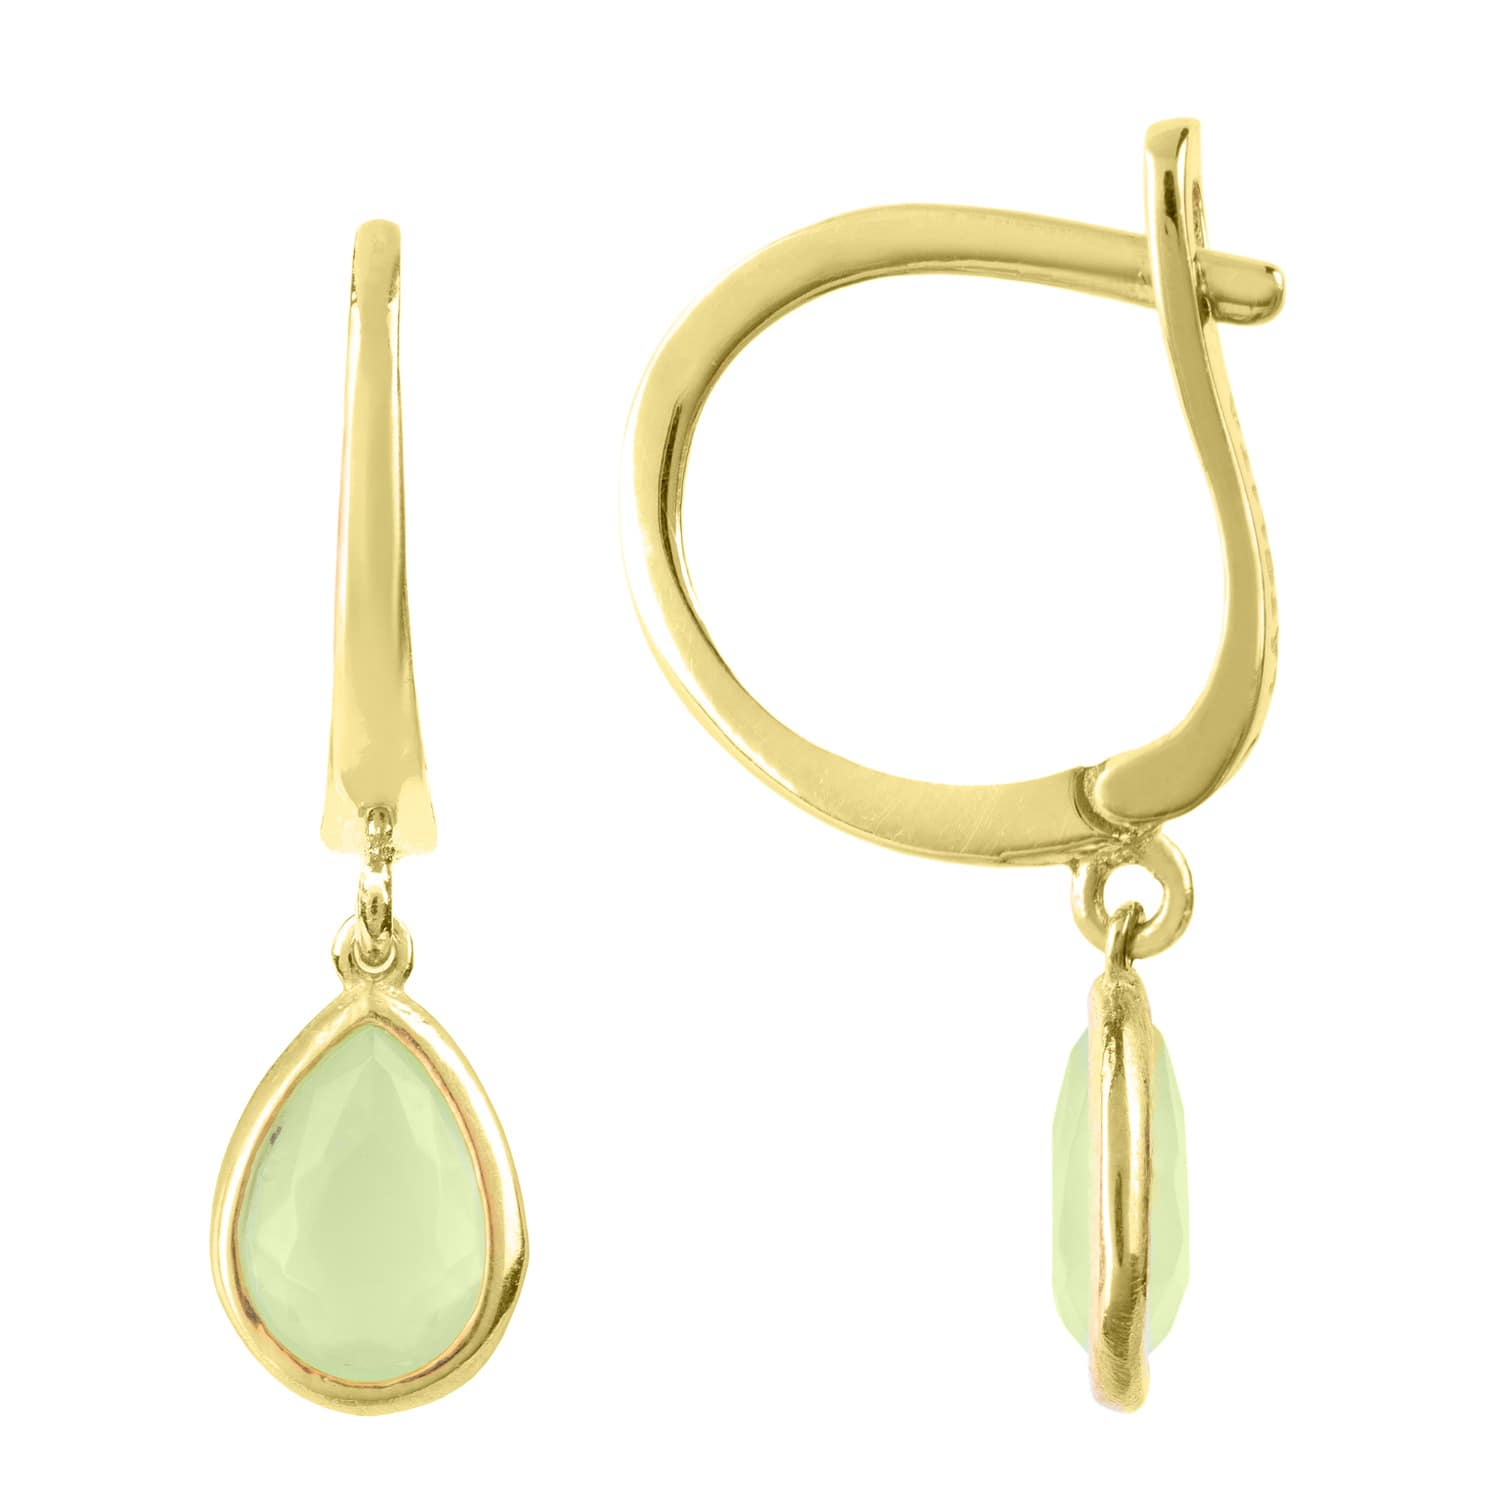 Latelita London Pisa Mini Teardrop Earrings Gold Aqua Chalcedony PAKH3jH5